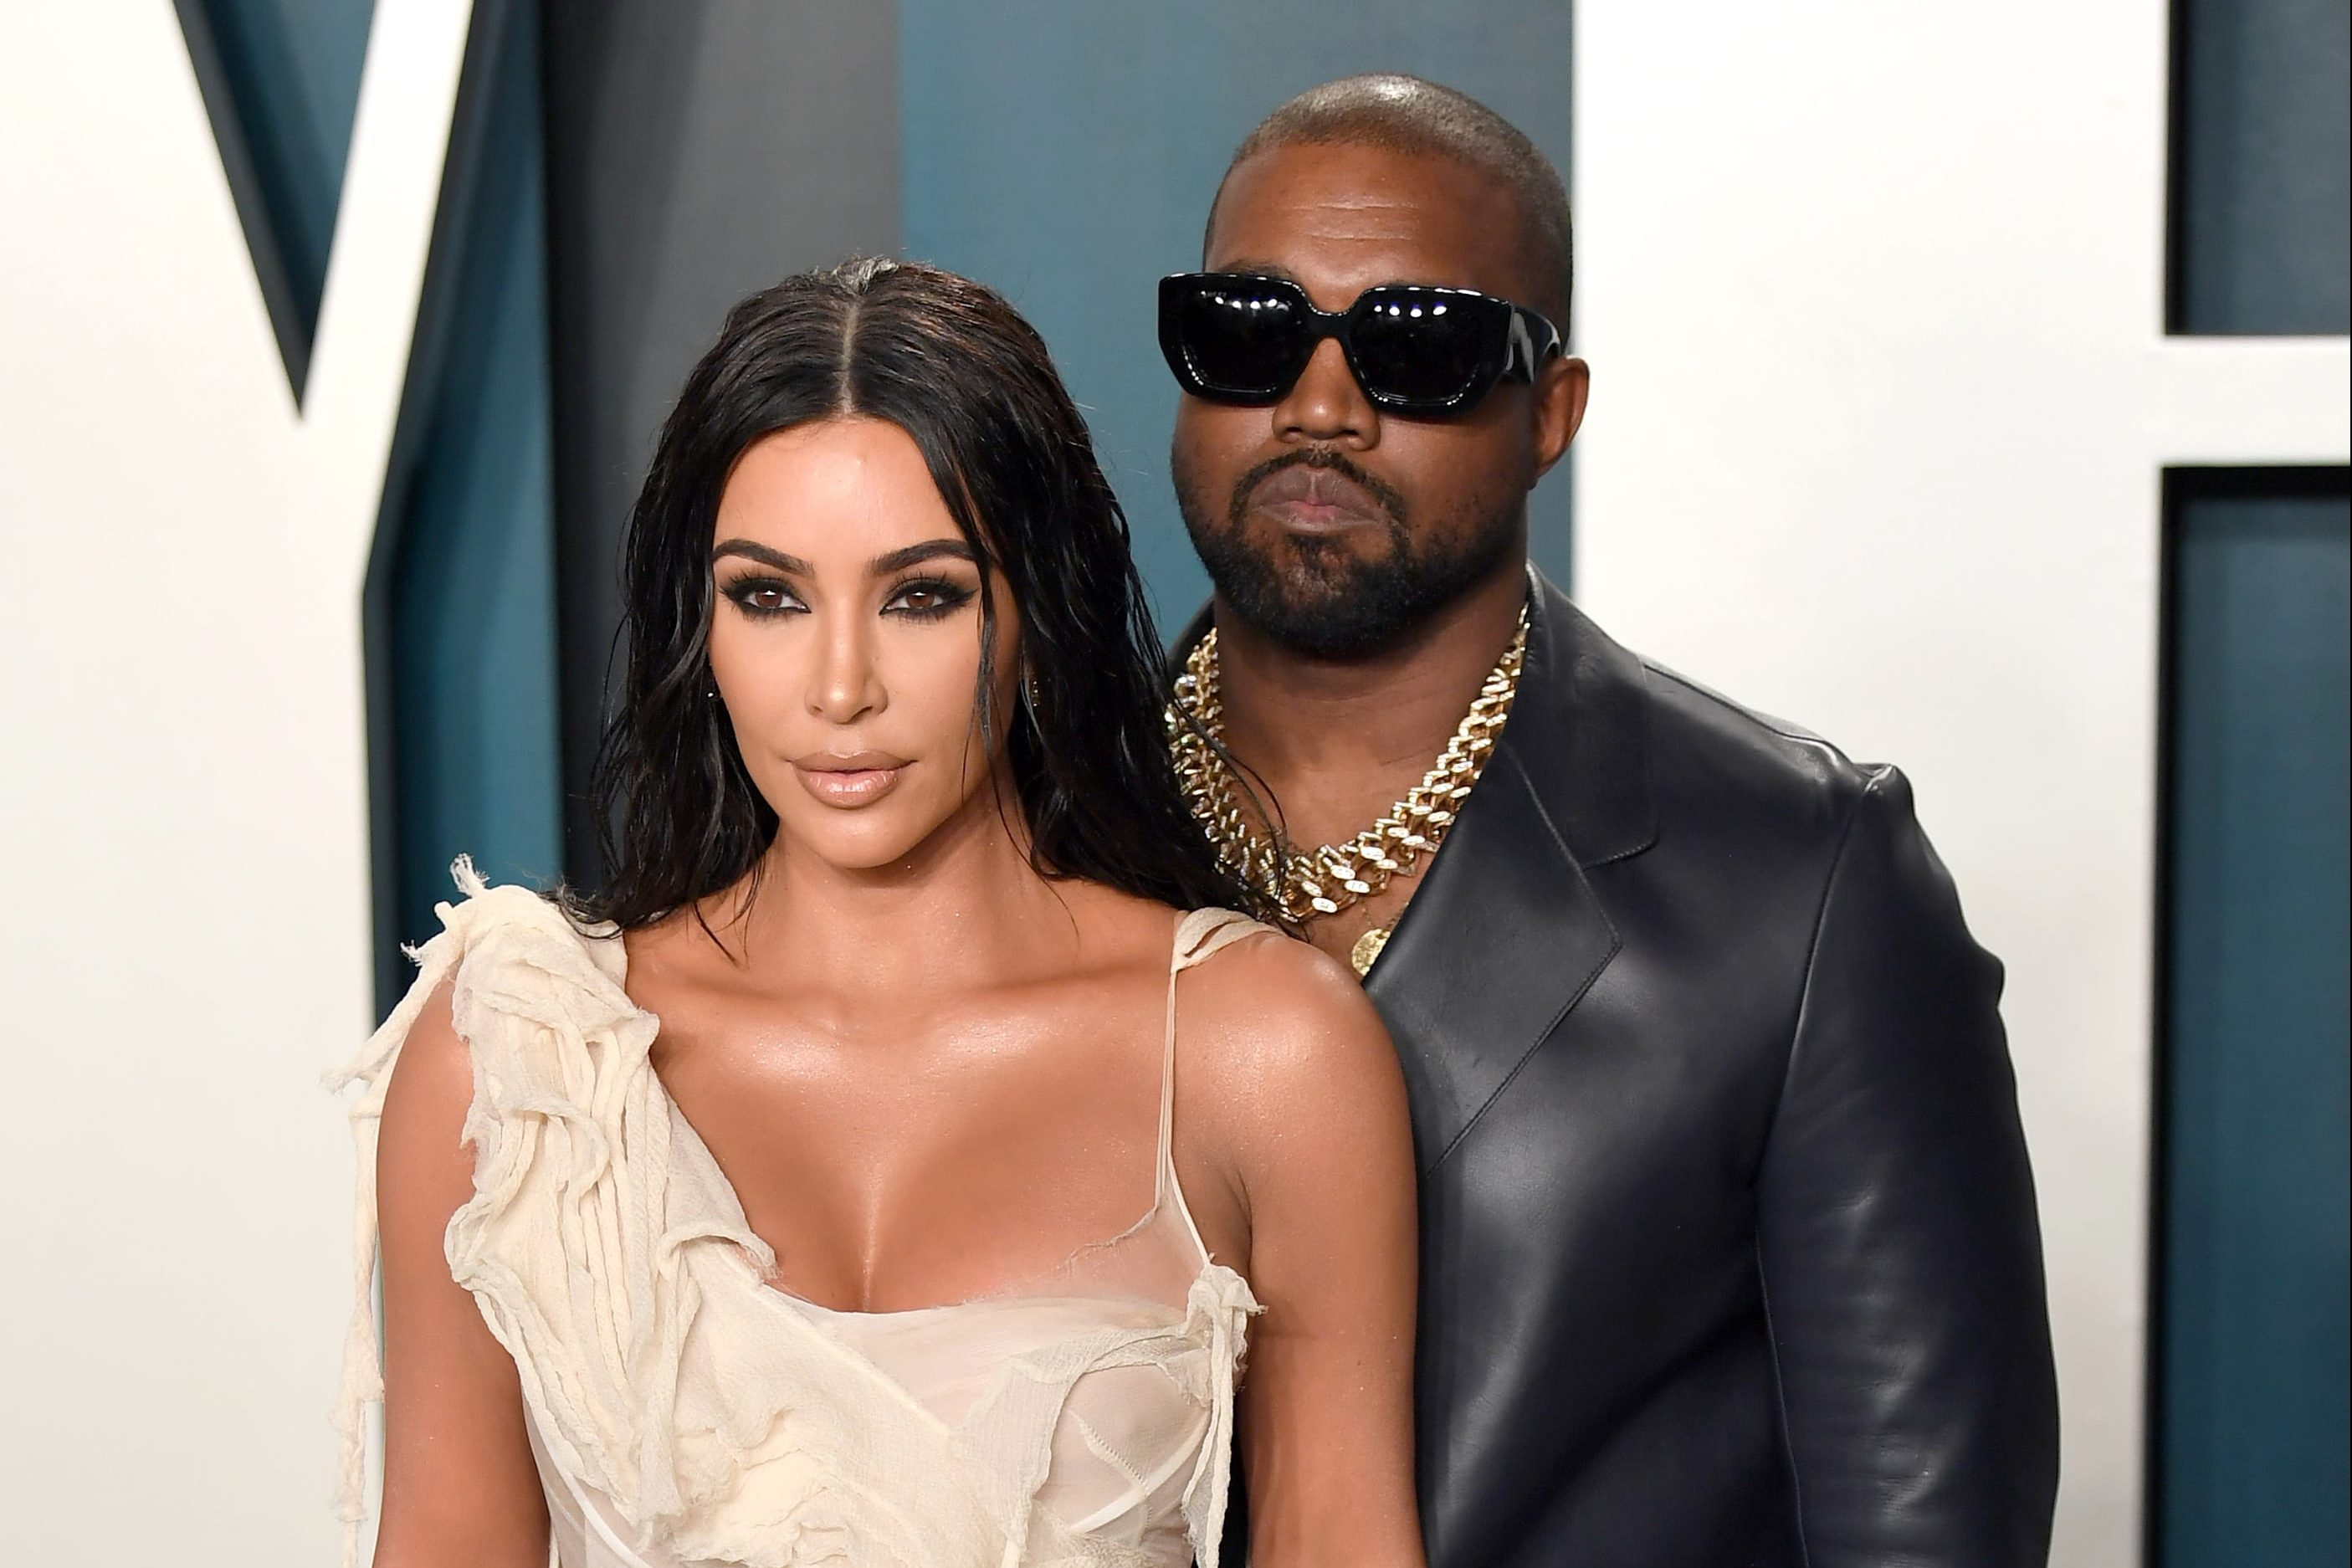 Kanye Reese Witherspoon Among The Celebs Who Got Ppp Loans Observer